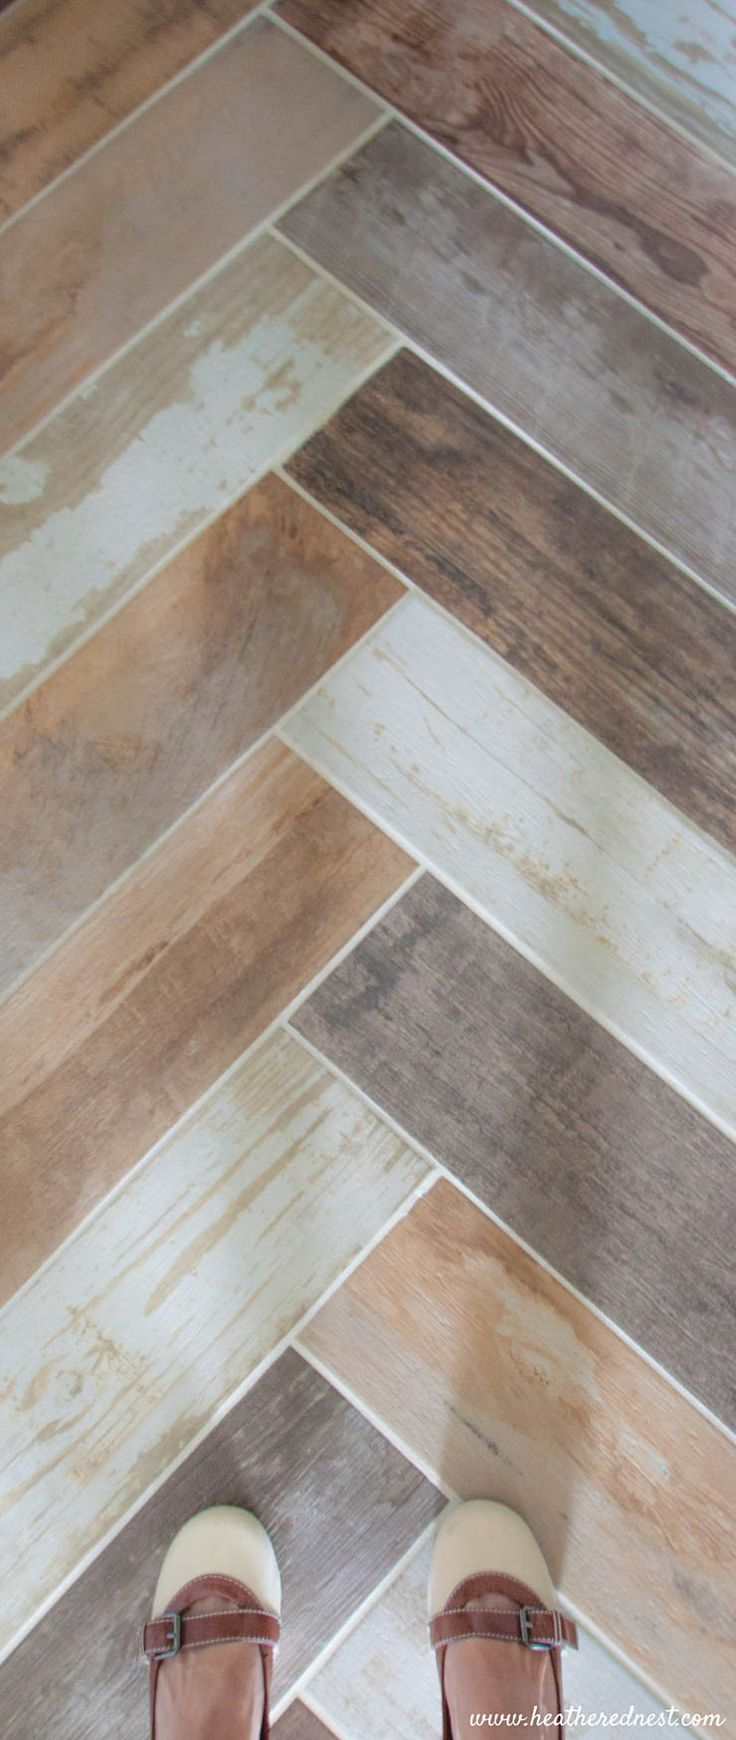 Best 25 faux wood tiles ideas on pinterest faux wood for Simulated wood flooring